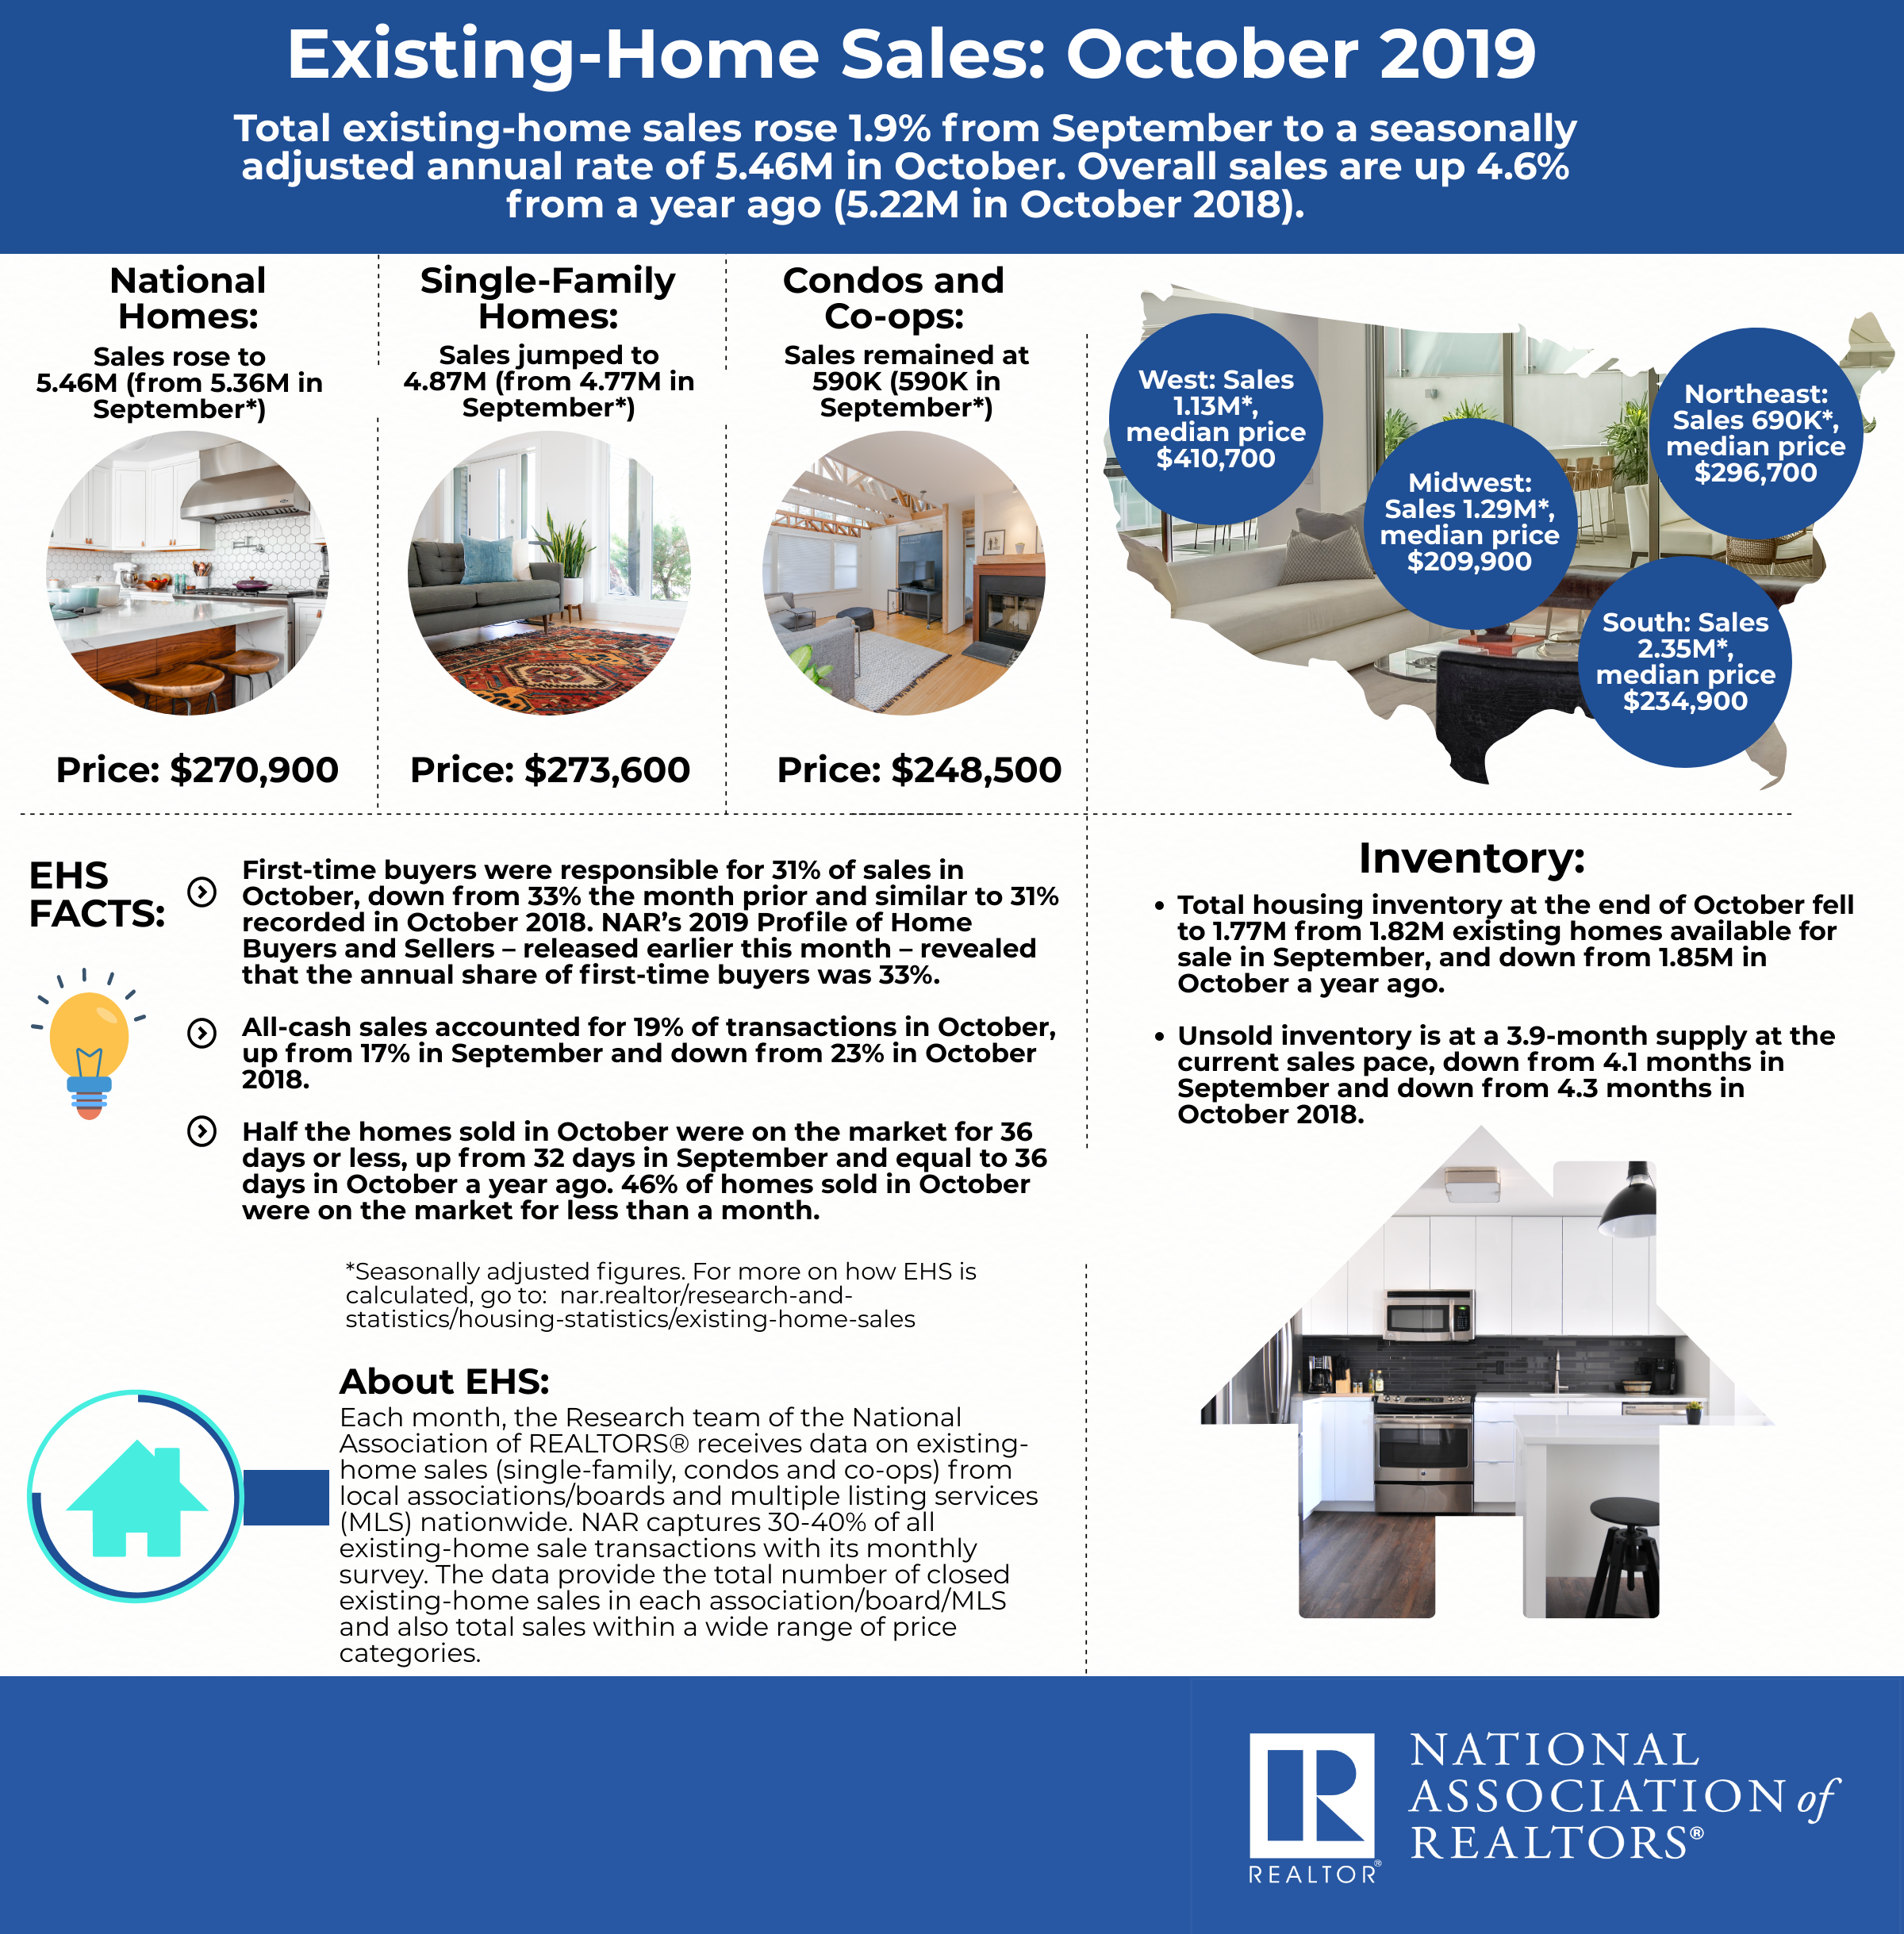 Existing Home Sales Snapshot